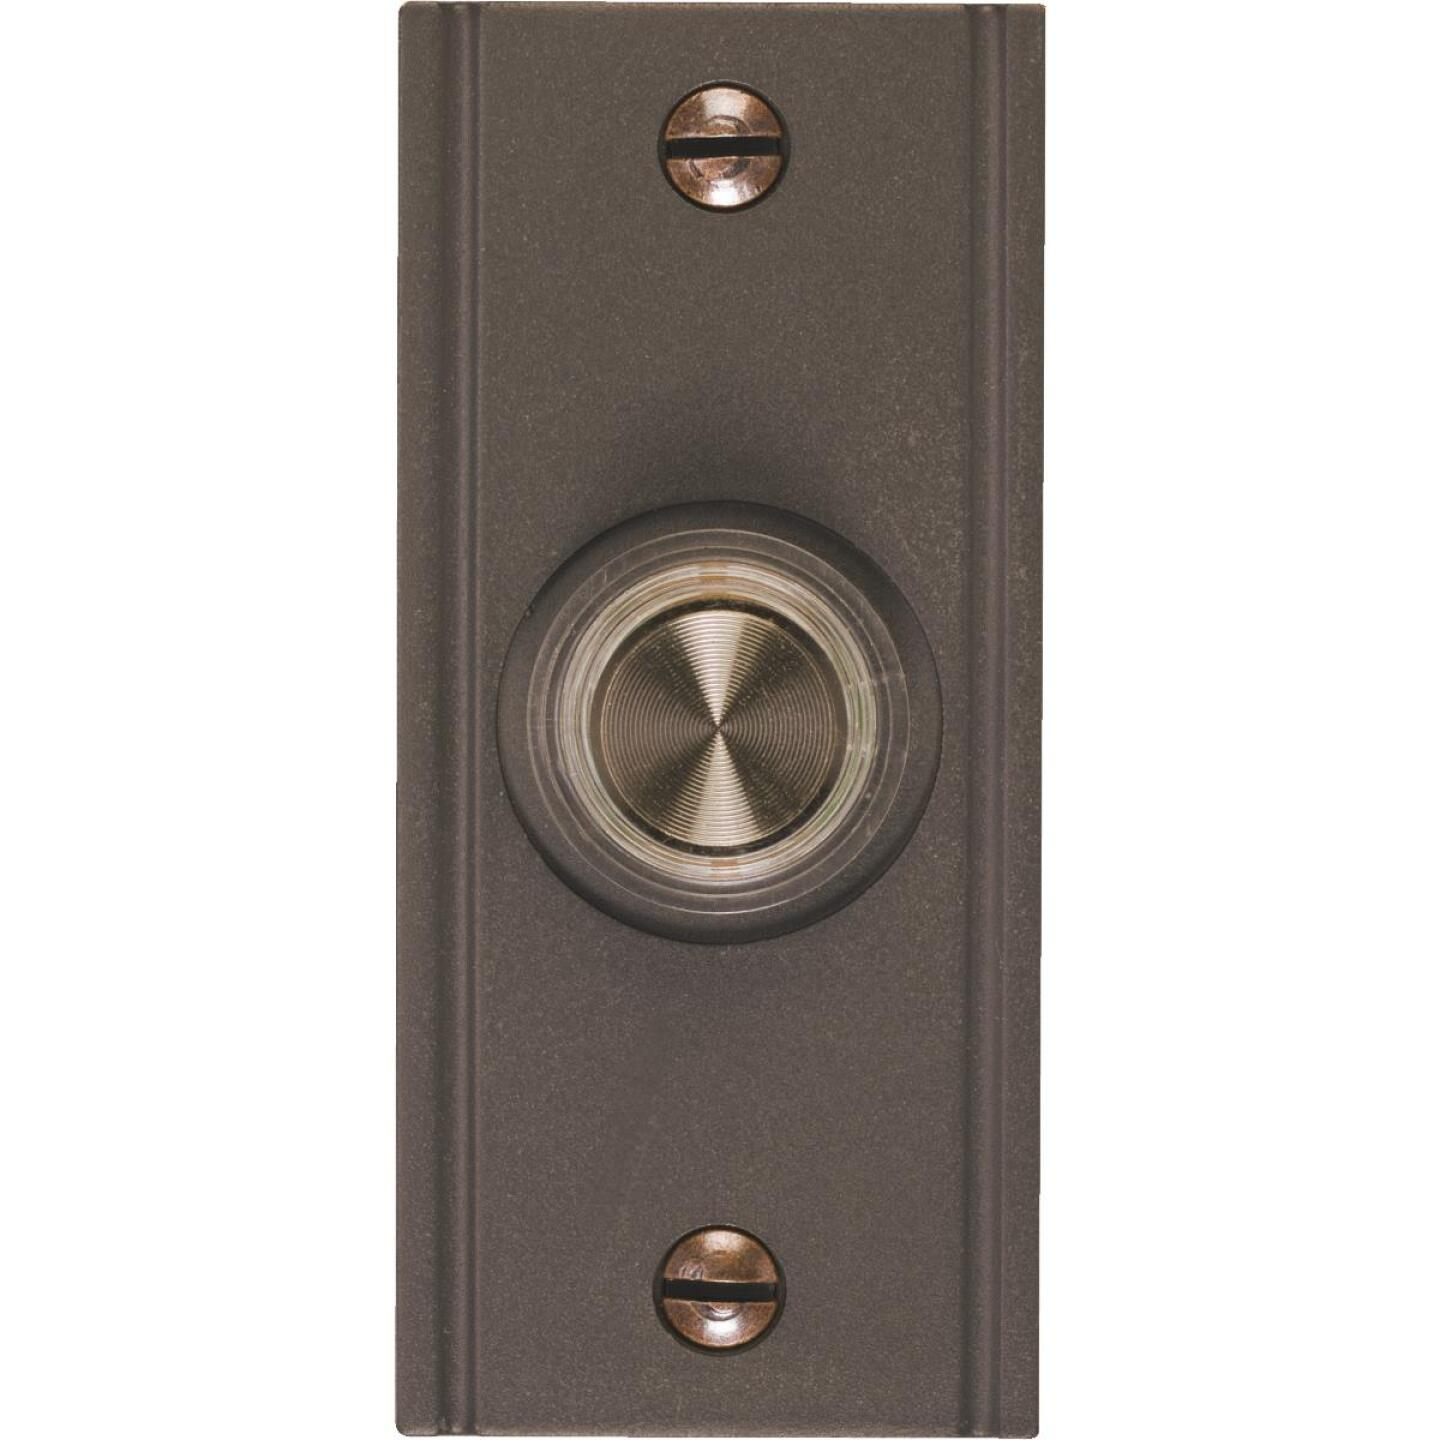 IQ America Wired Oil Rubbed Bronze Brass Lighted Doorbell Push-Button Image 1